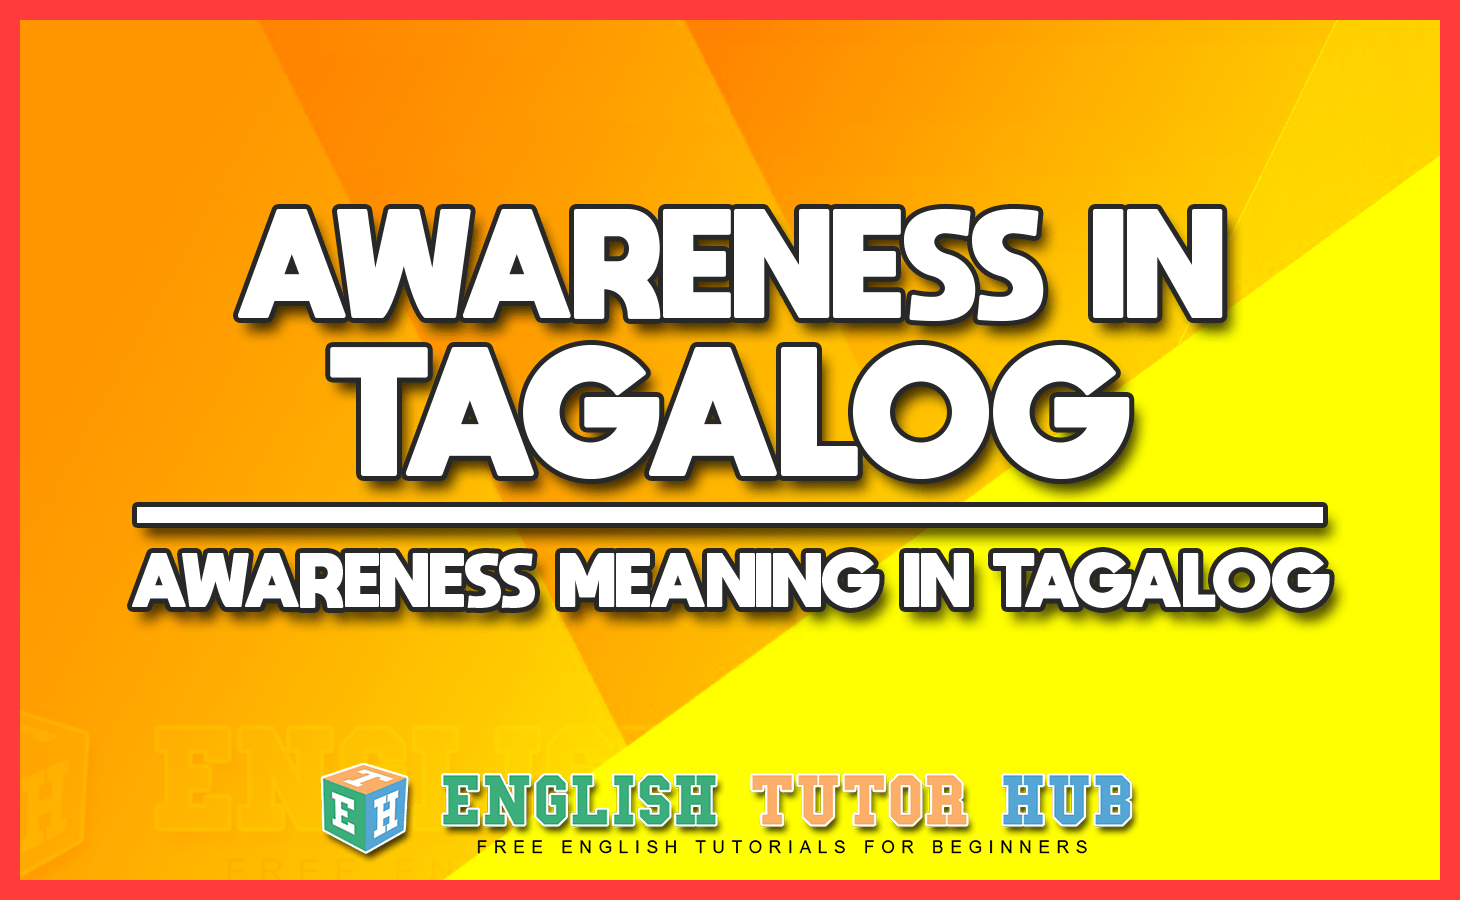 AWARENESS IN TAGALOG - AWARENESS MEANING IN TAGALOG